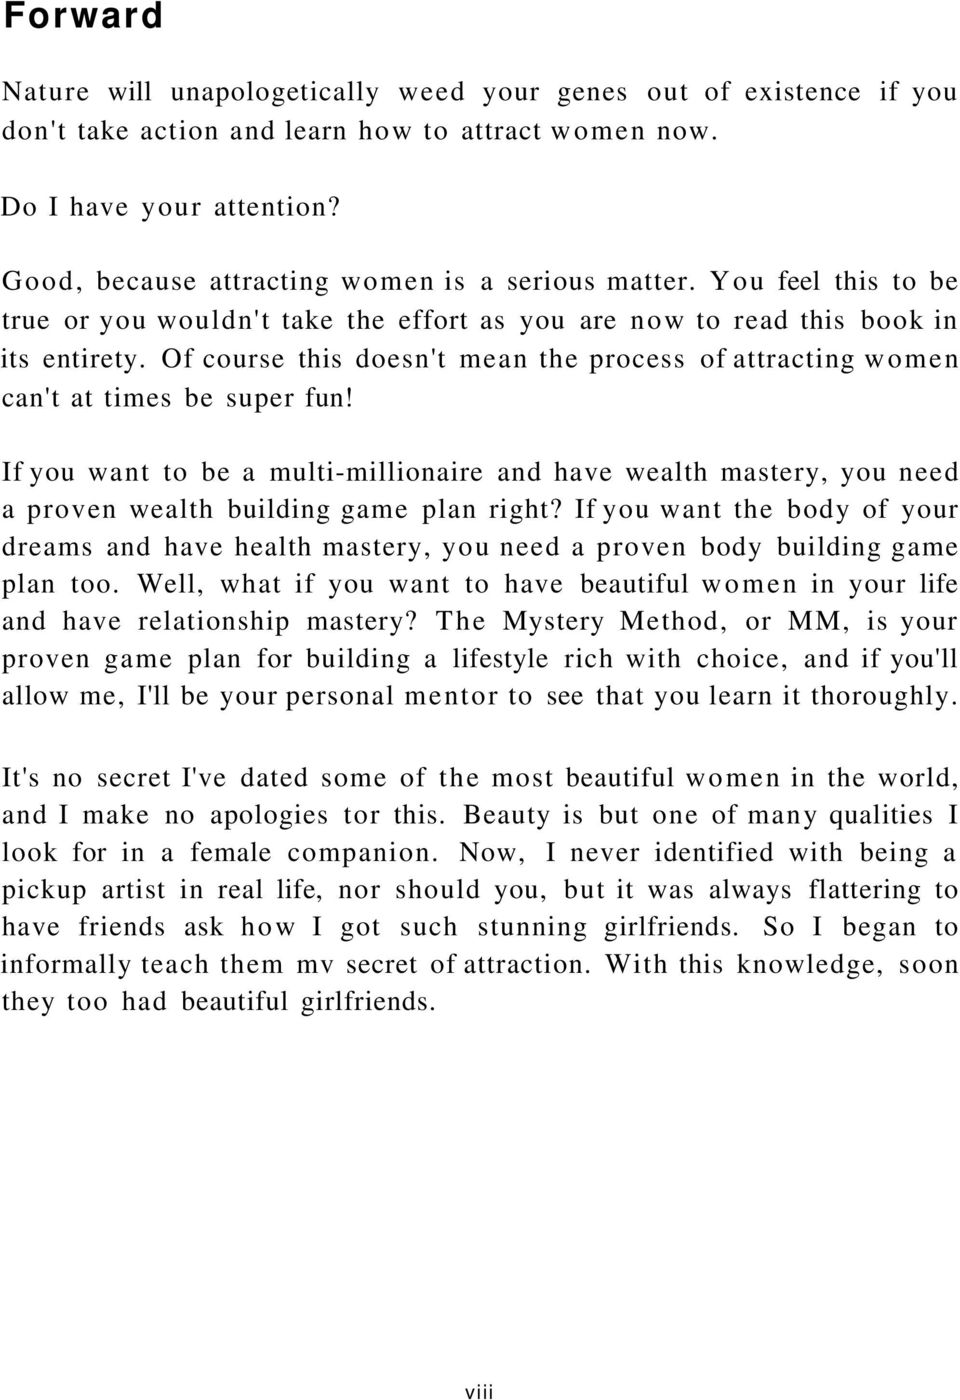 The mystery method the venusian arts handbook 2 nd edition how to of course this doesnt mean the process of attracting women cant at fandeluxe Image collections